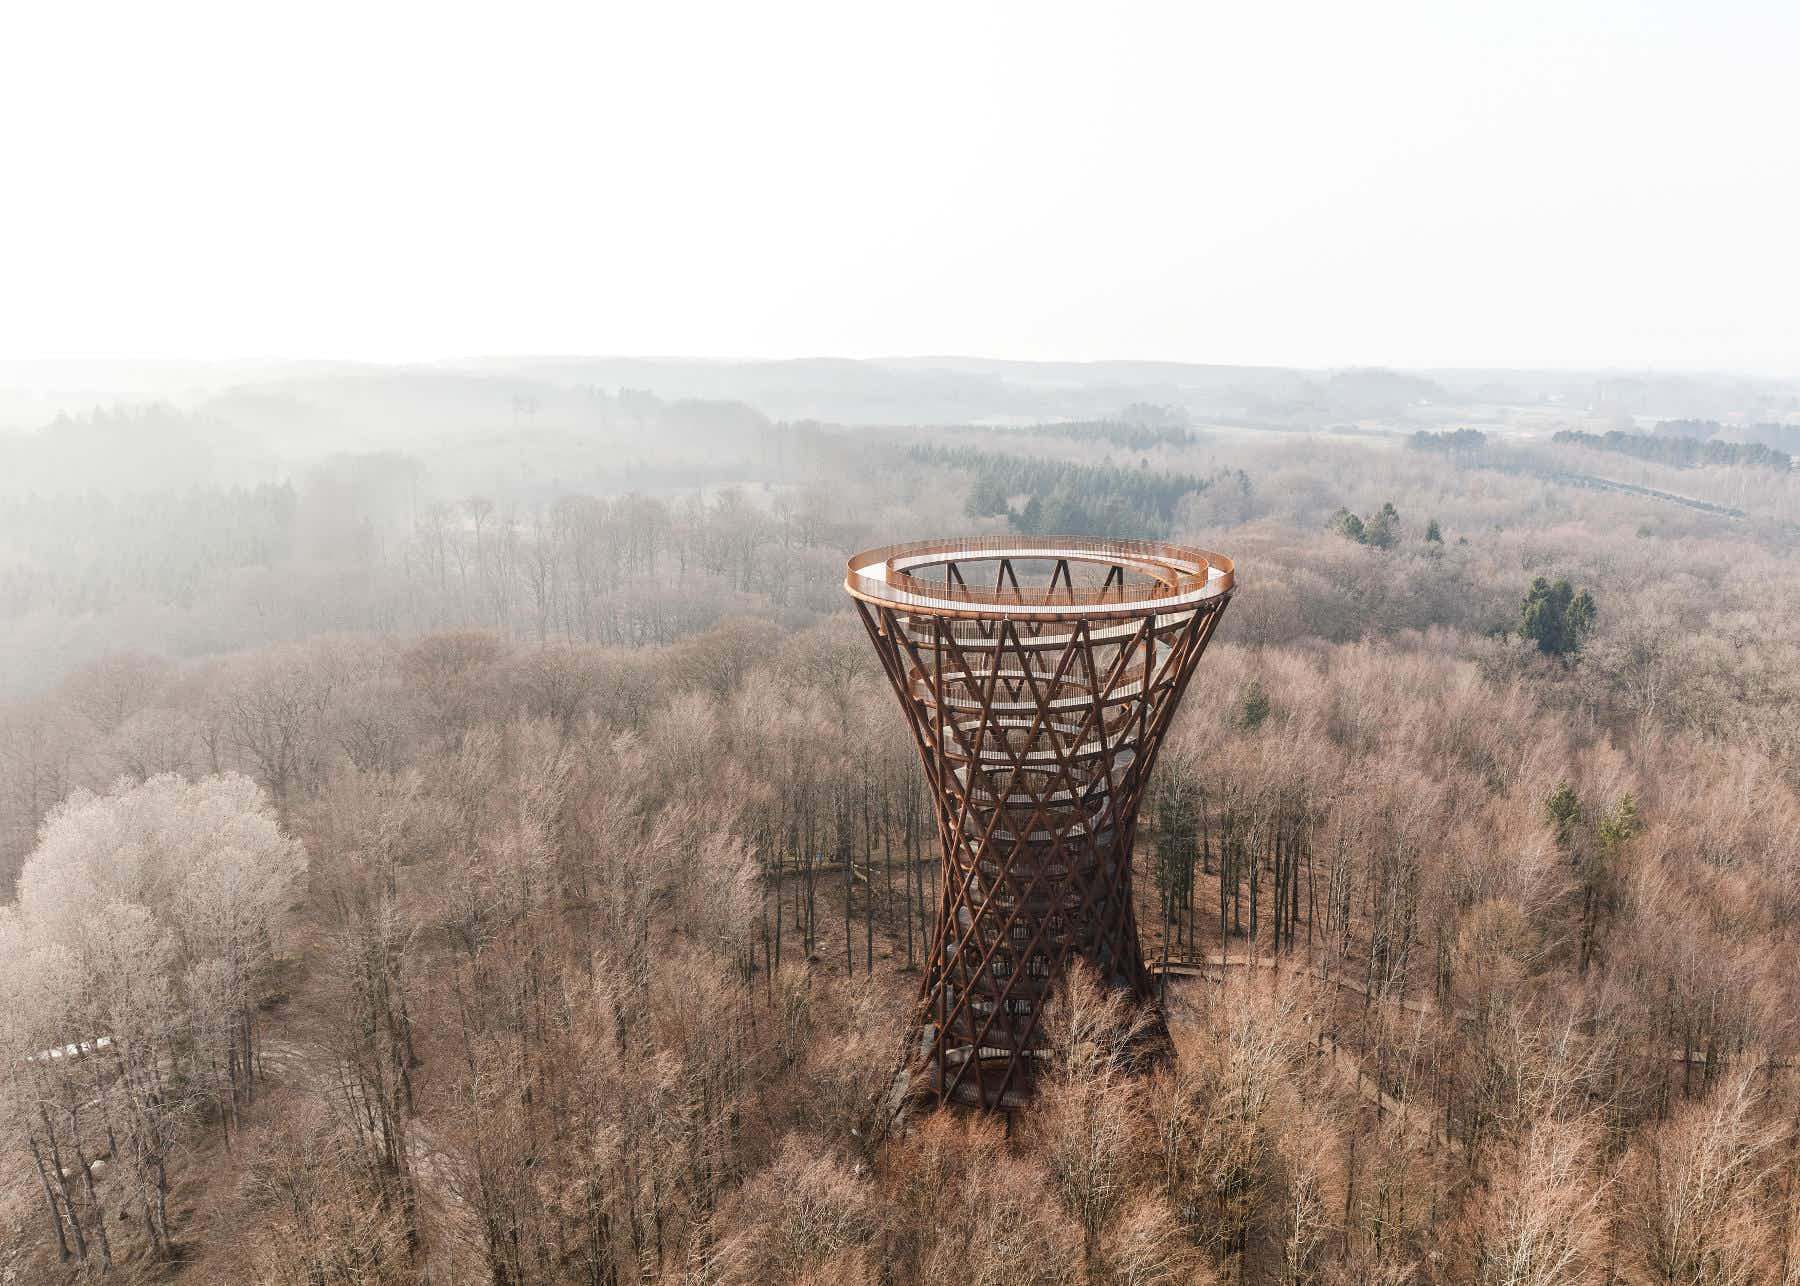 Denmark's spiral forest tower is finally open and it's spectacular